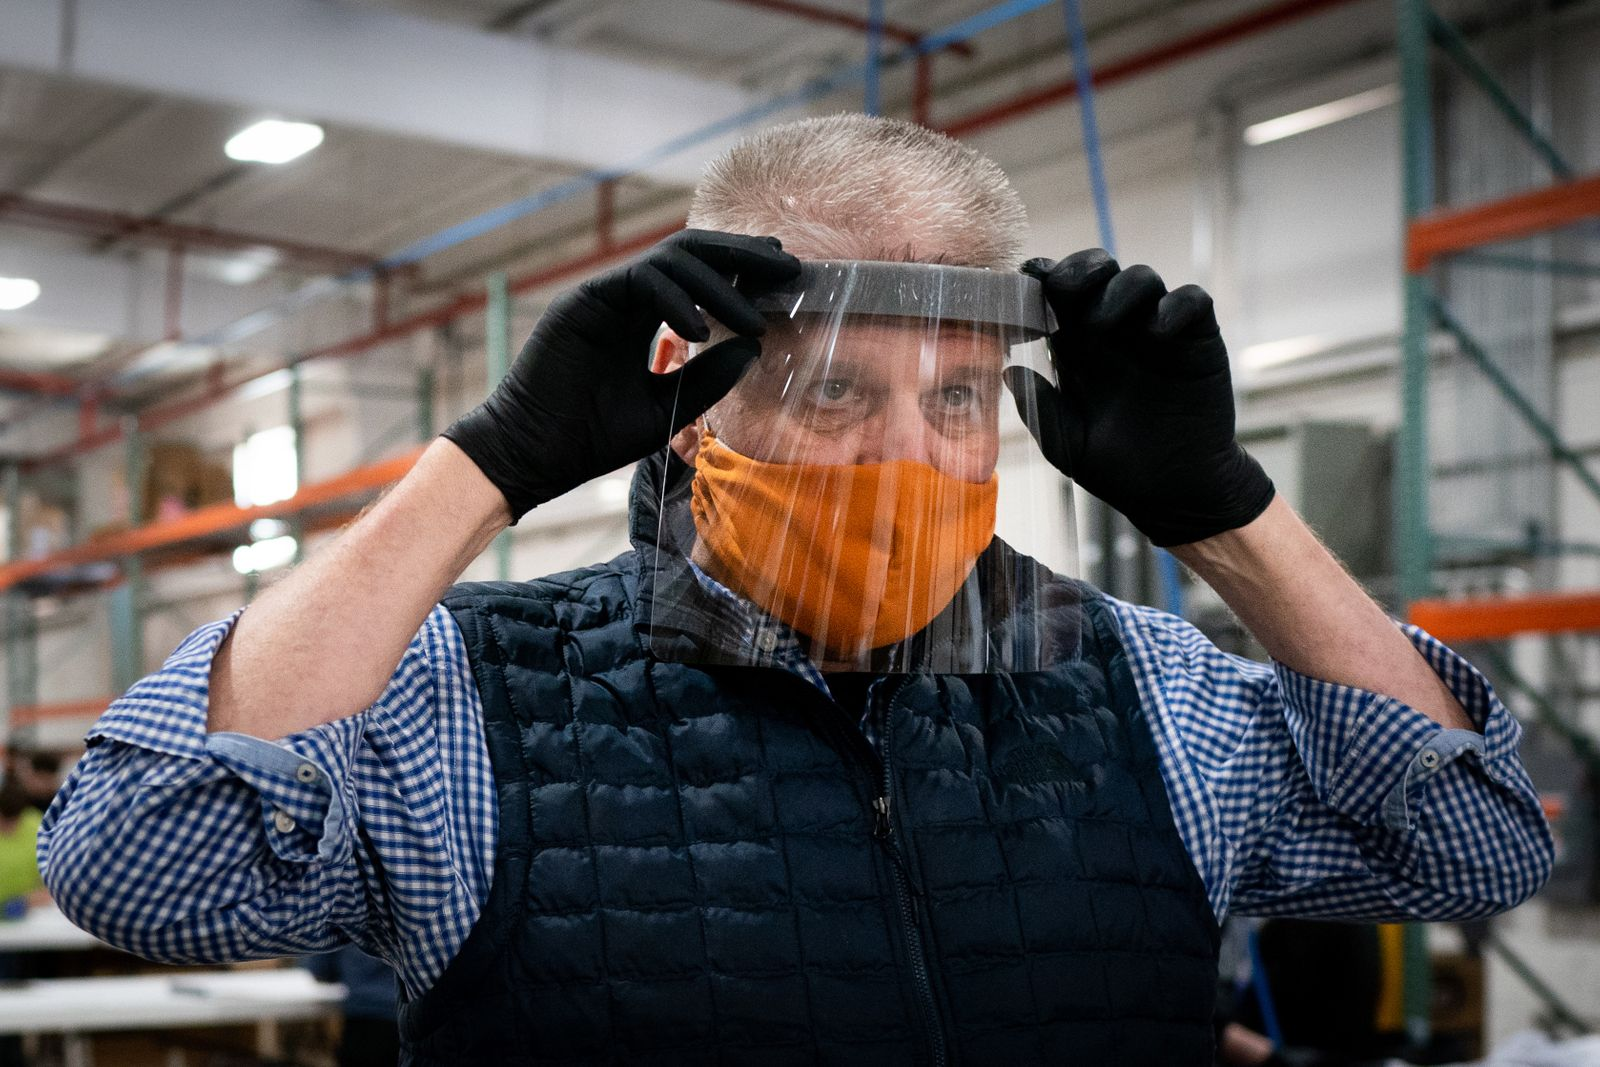 Sam Yoder, the owner of Berlin Gardens in Millersburg, Ohio, demonstrates a face shield, April 3, 2020, that the company is manufacturing. (Erin Schaff/The New York Times)